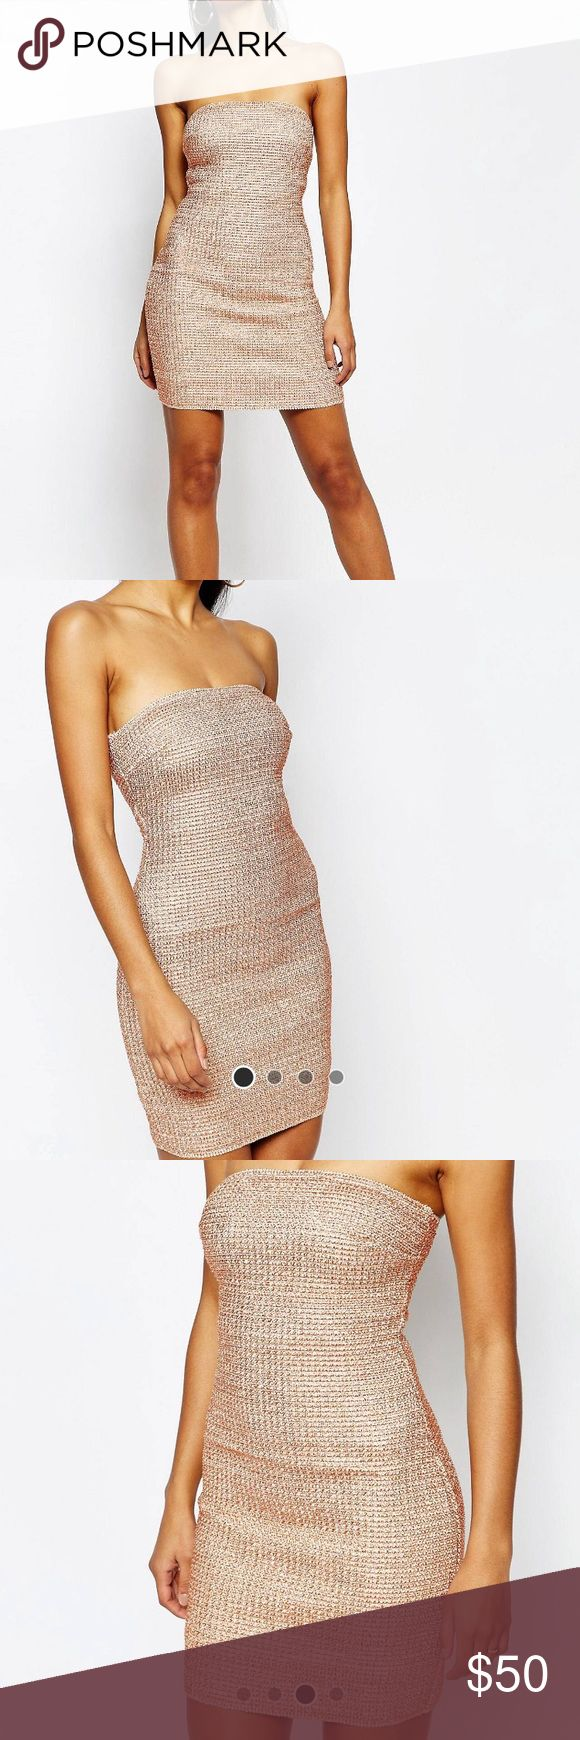 ASOS- WOW Couture Rose Gold Bandage Dress ASOS- WOW Couture Rose Gold Bandage Dress- worn once in Atlantic City stands out against typical black dresses ASOS Dresses